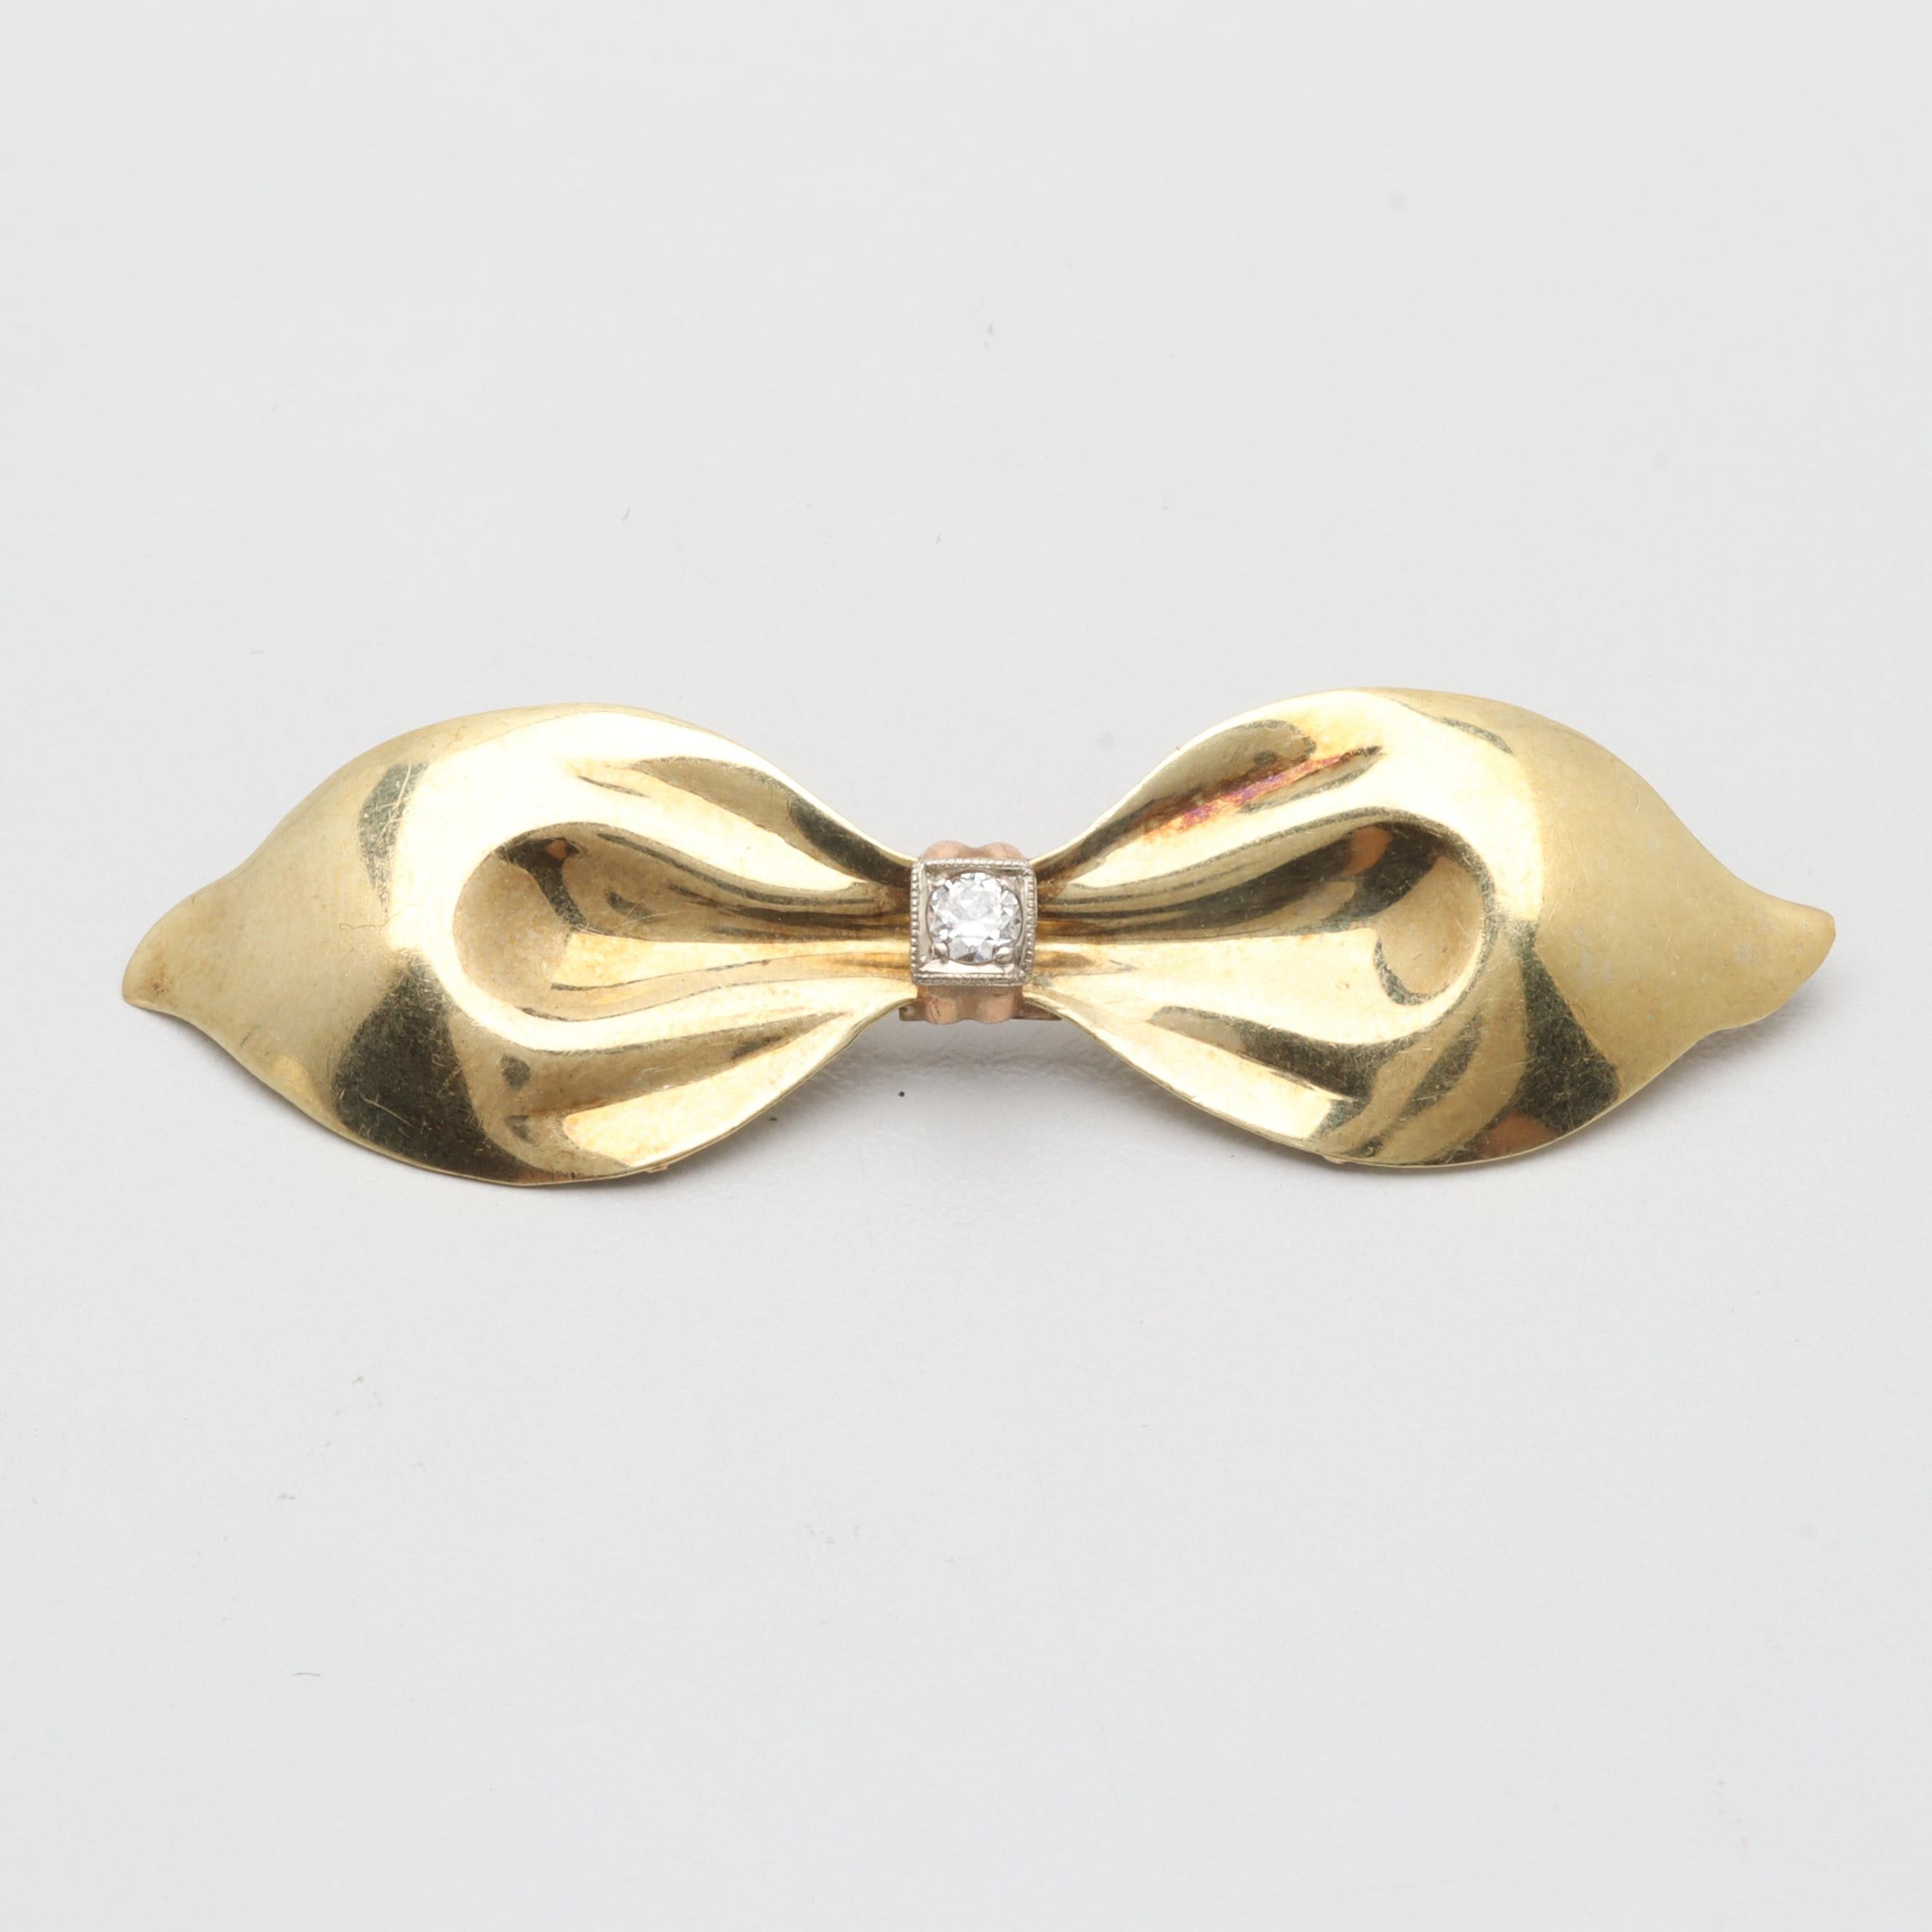 Circa 1940s 14K Yellow Gold Diamond Bow Brooch